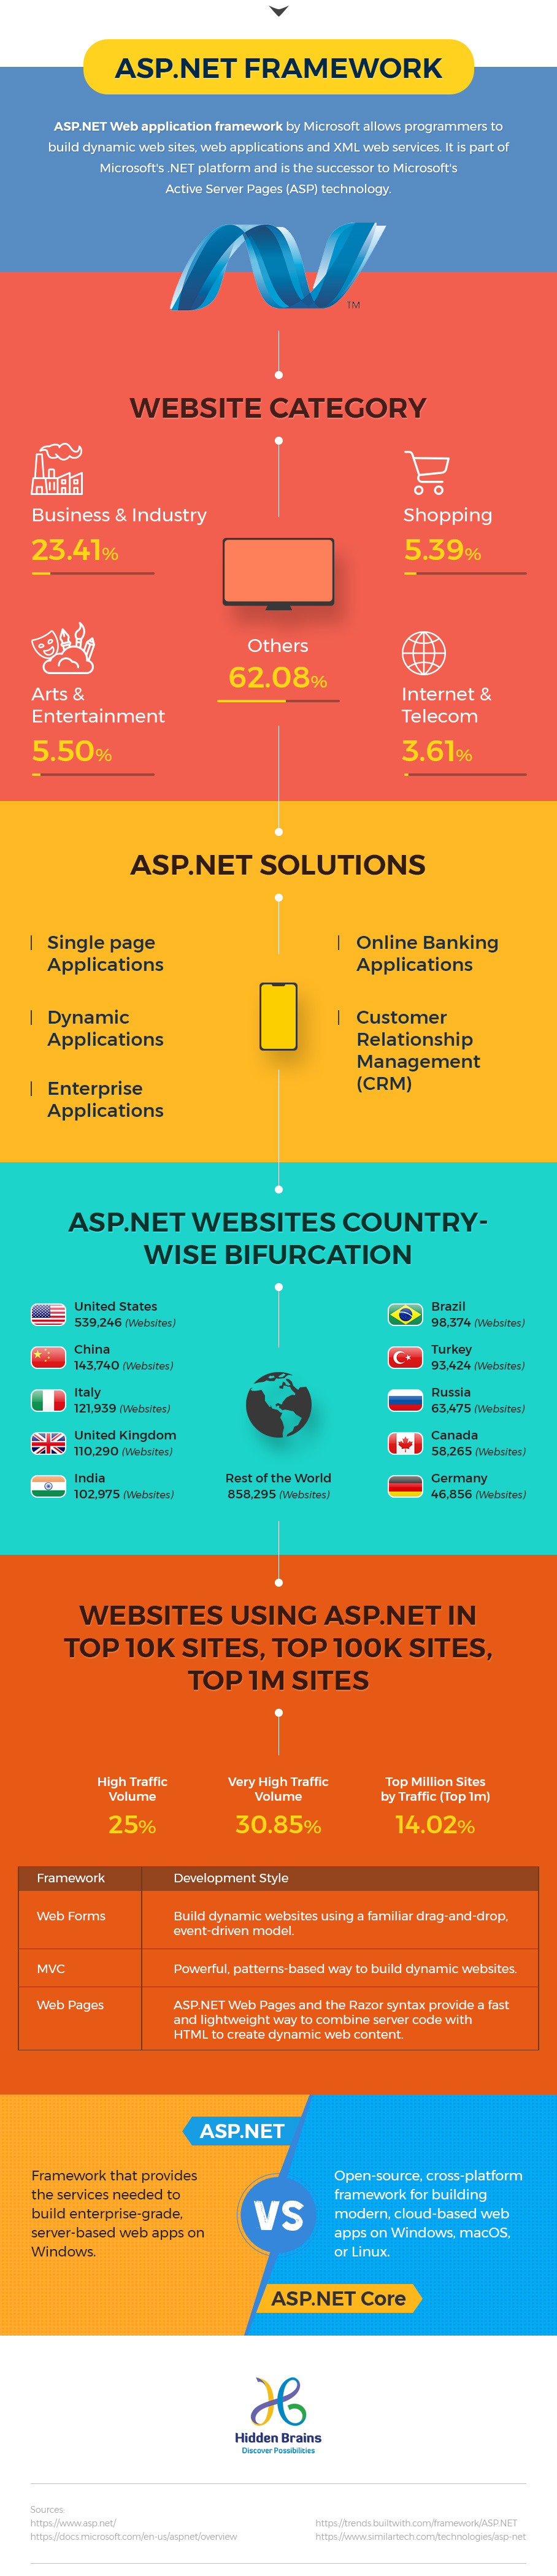 Infographic: ASP NET Framework & its Role in Building Web